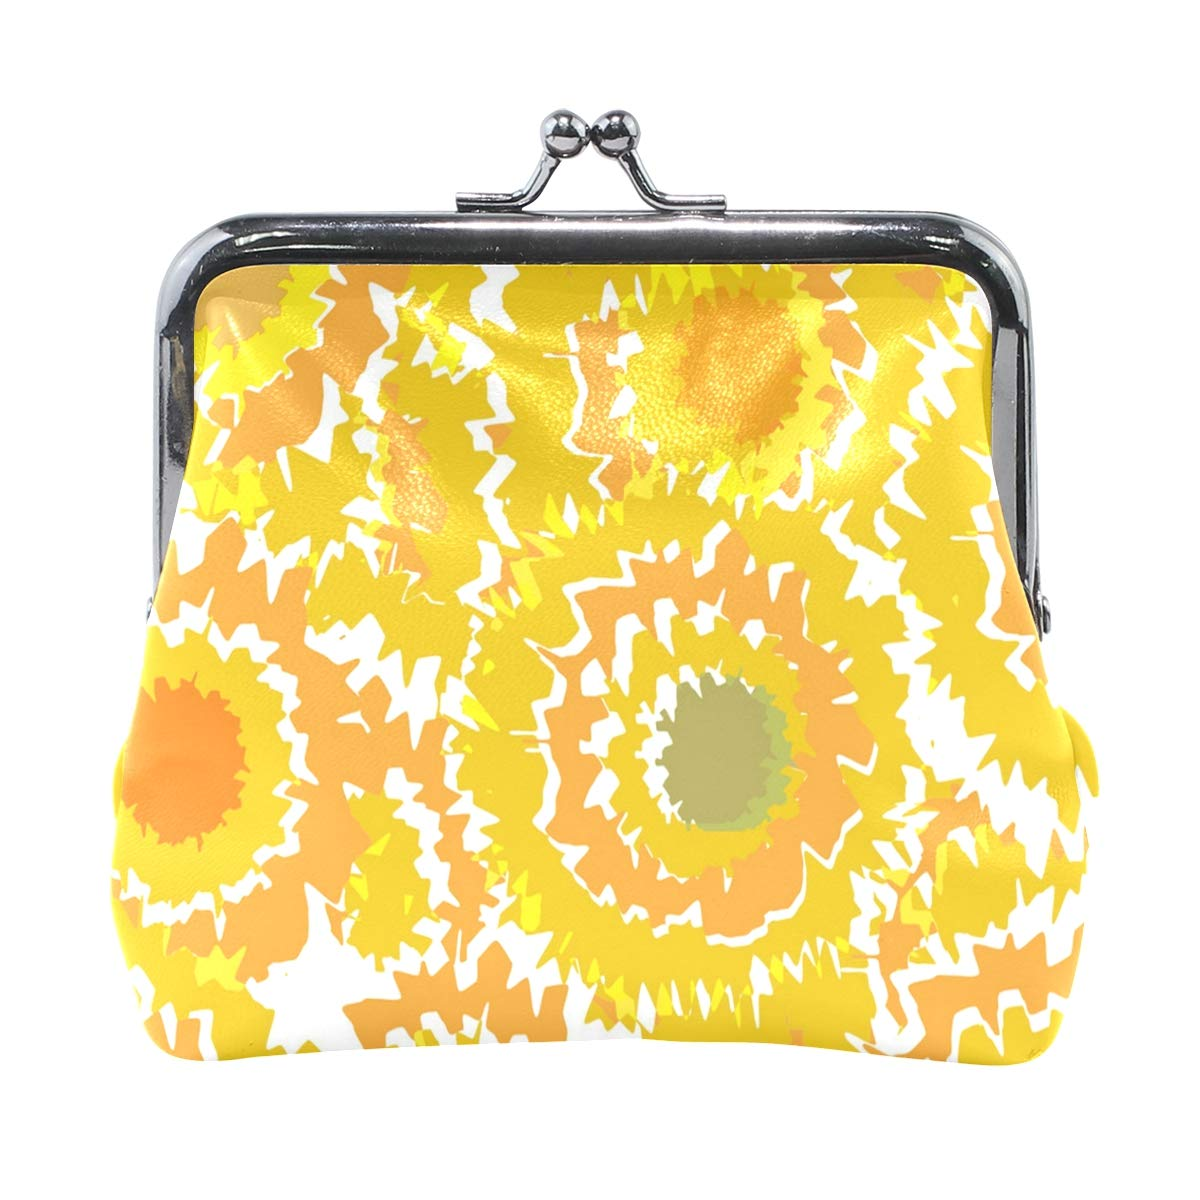 Exquisite Buckle Coin Purses Summer Colorful Sunflower Mini Wallet Key Card Holder Purse for Women